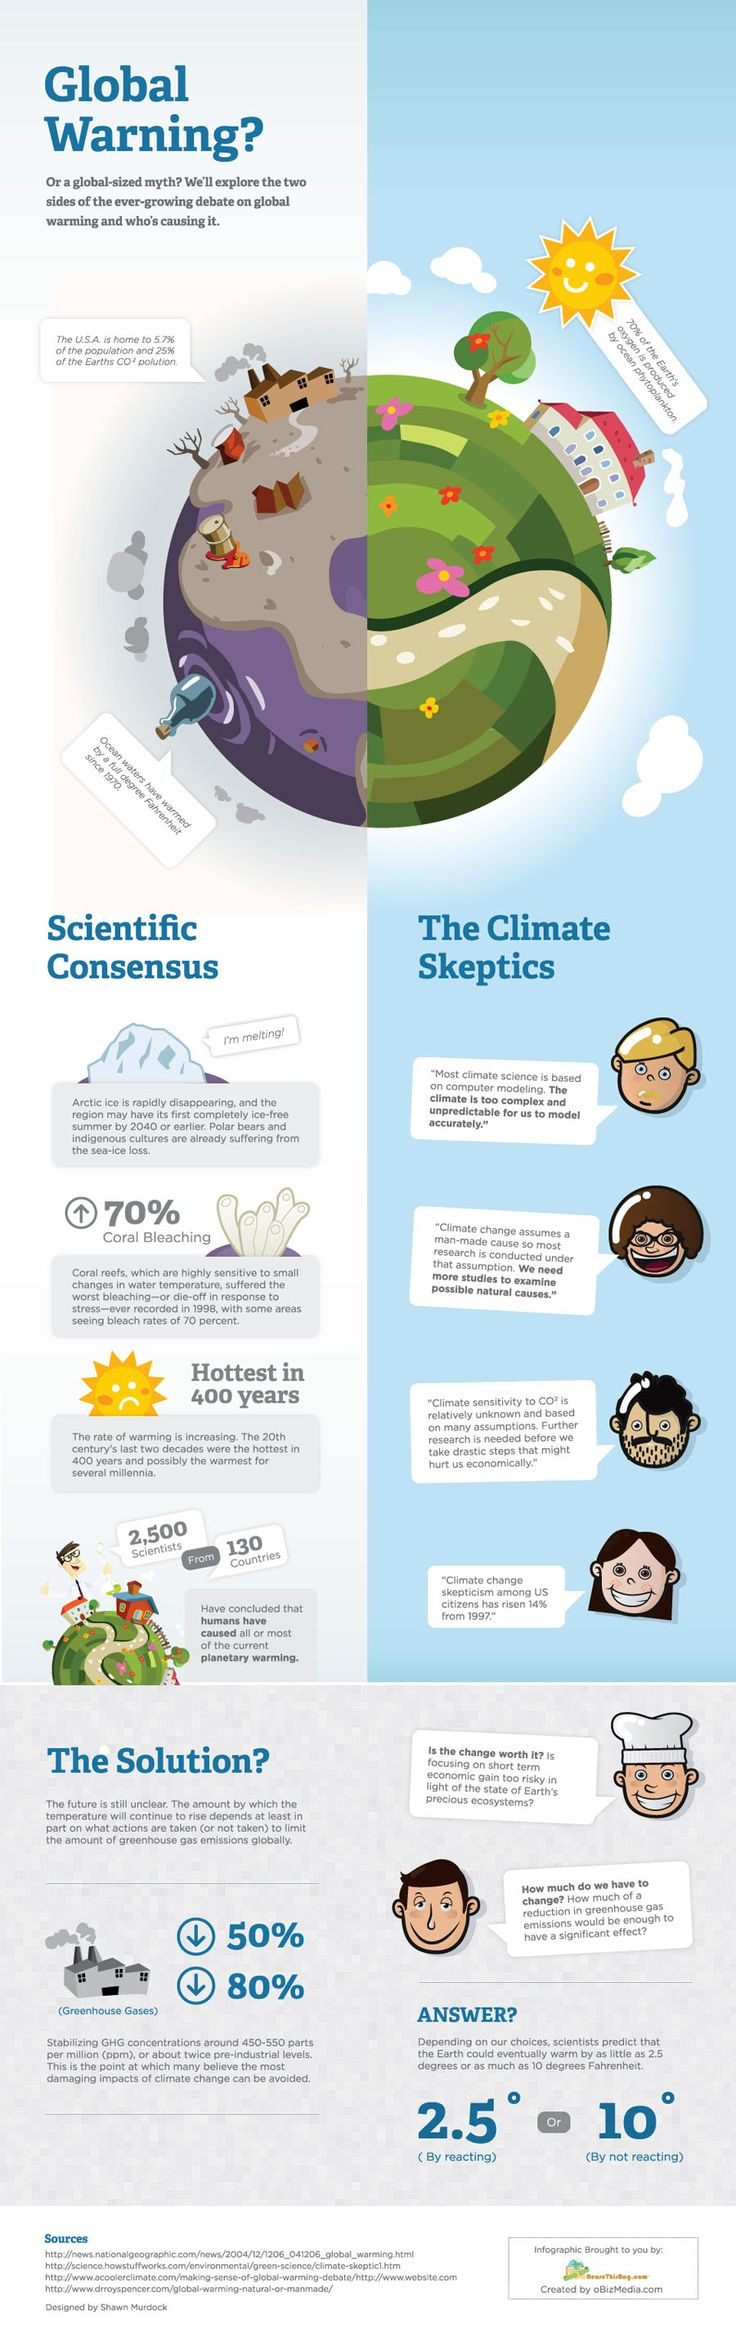 #infographic on global warming.